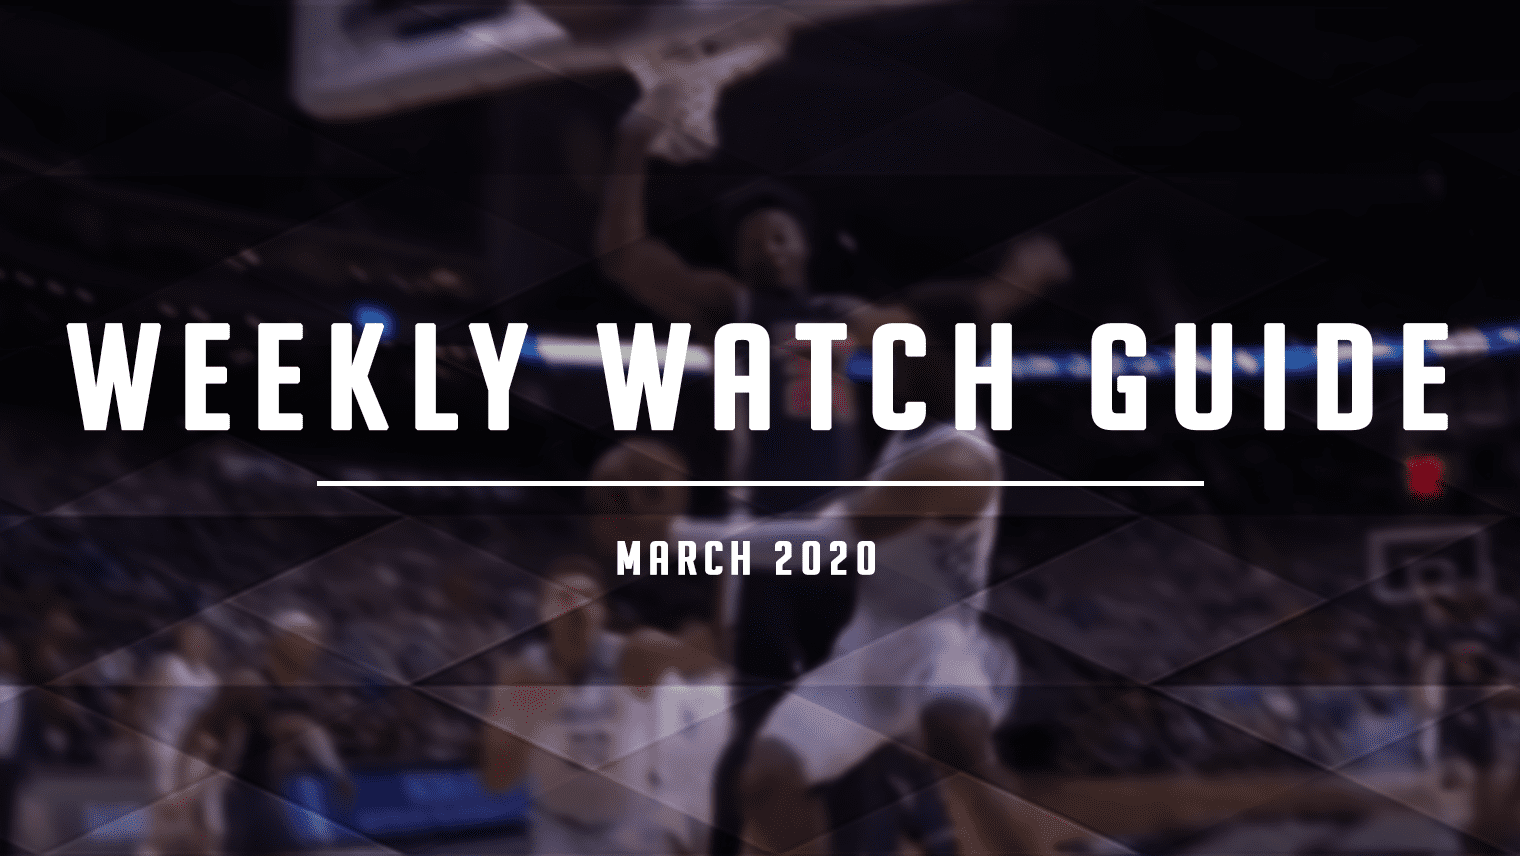 The NBA regular season is in the final stretch, the G League is moving along, and oh yeah, March Madness is here, too. Welcome to basketball in March!